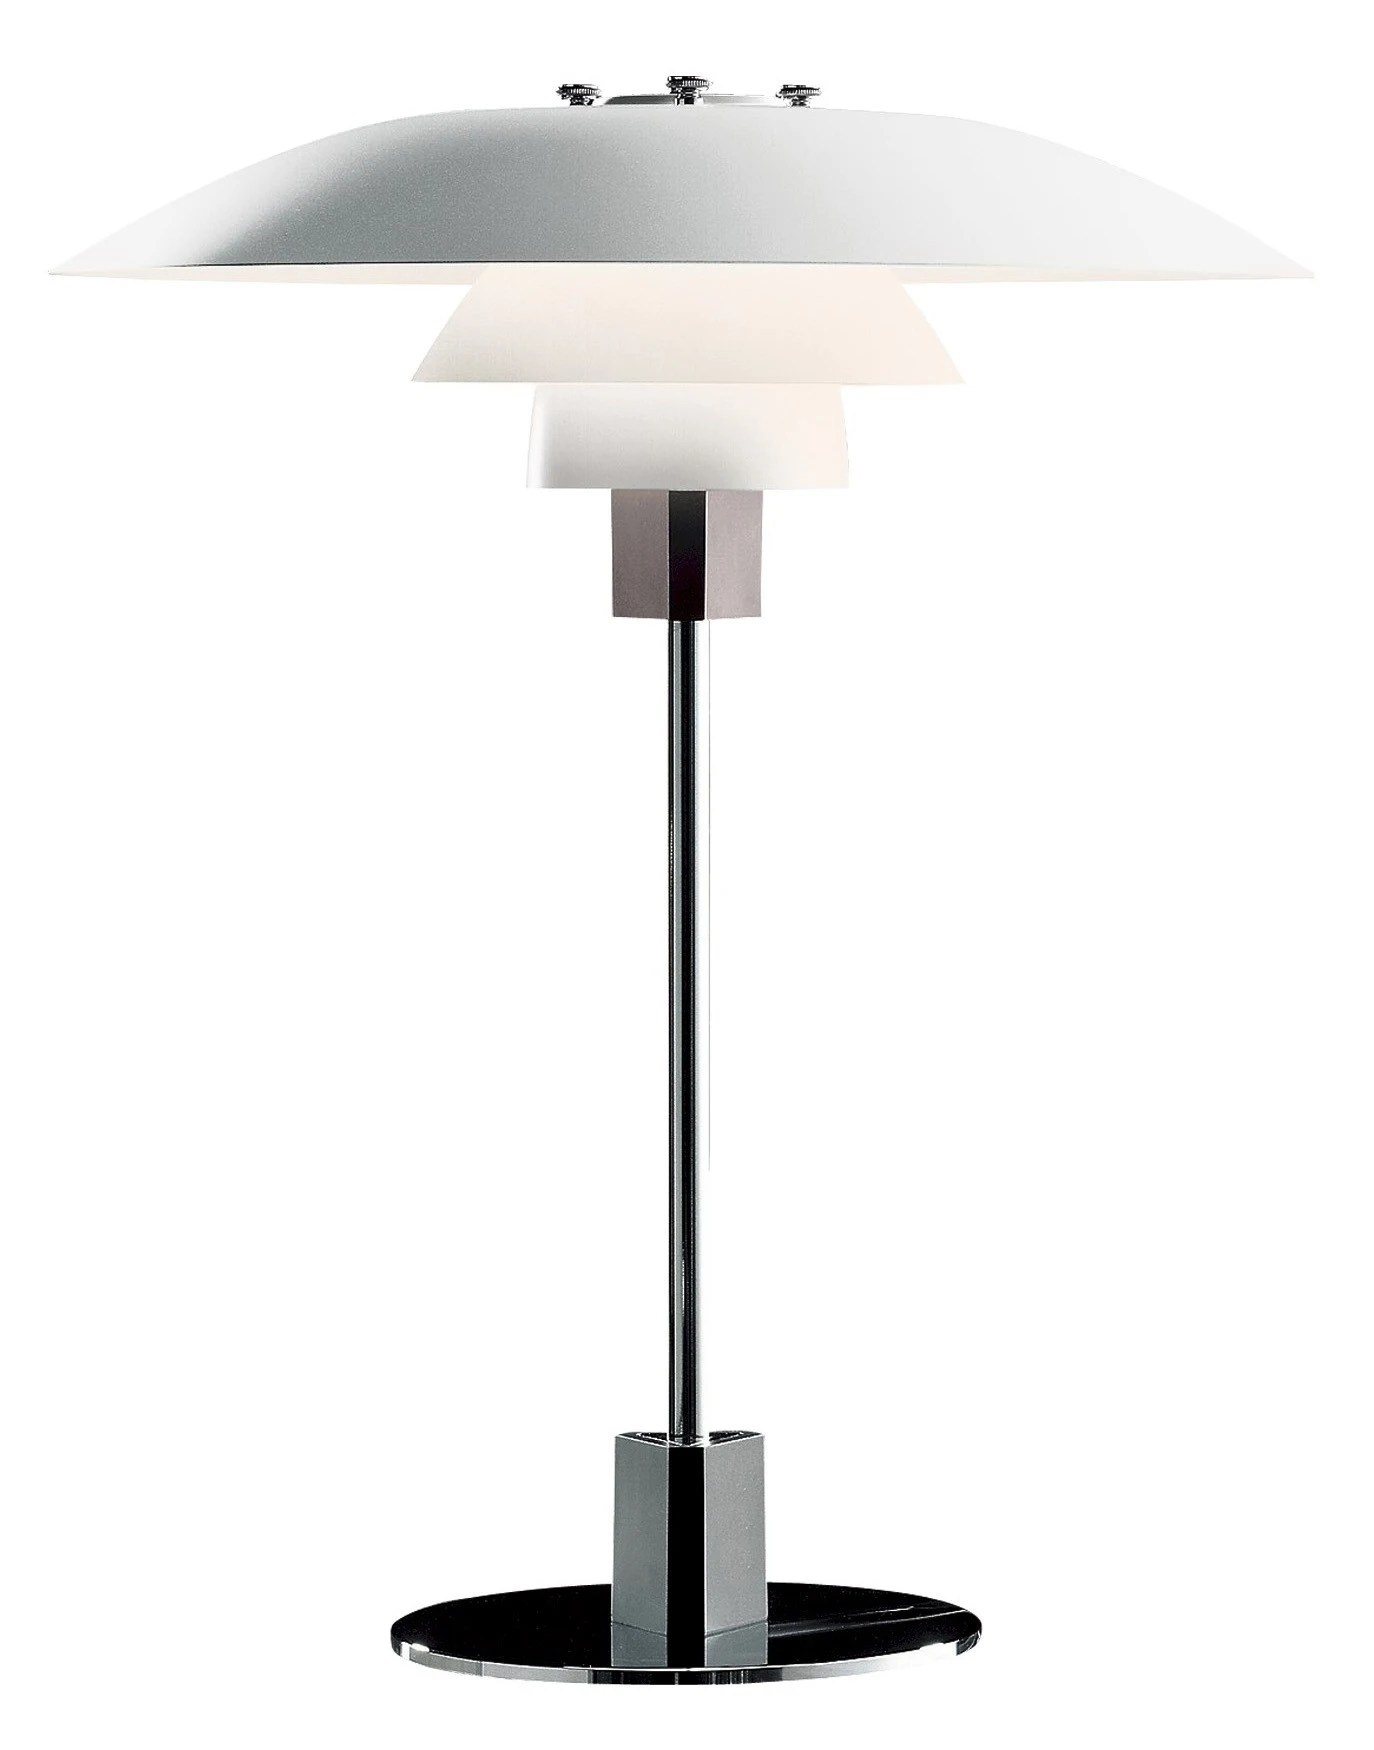 Louis Poulsen Ph 3 2 Louis Poulsen Ph 4 3 Table Lamp